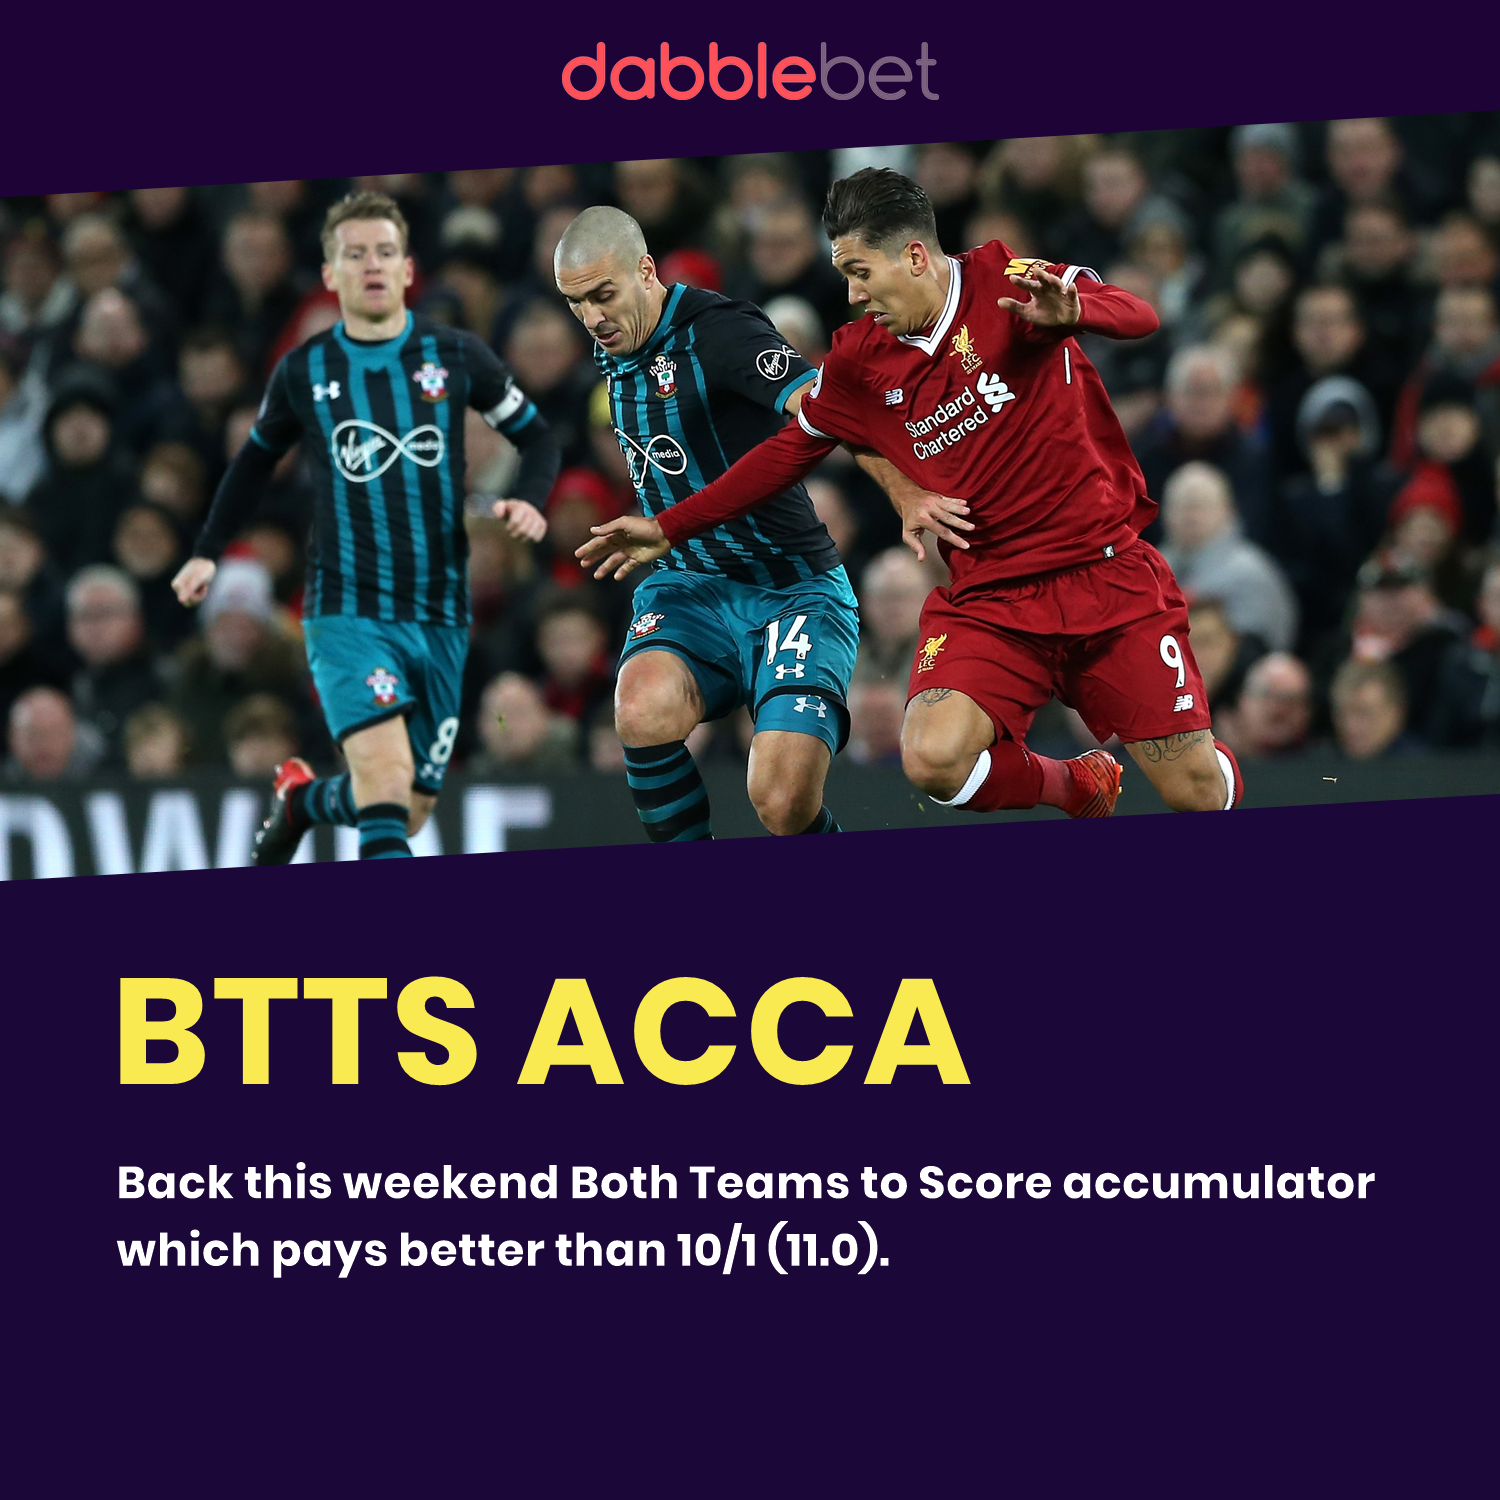 Betting: A both teams to score accumulator featuring Real Madrid